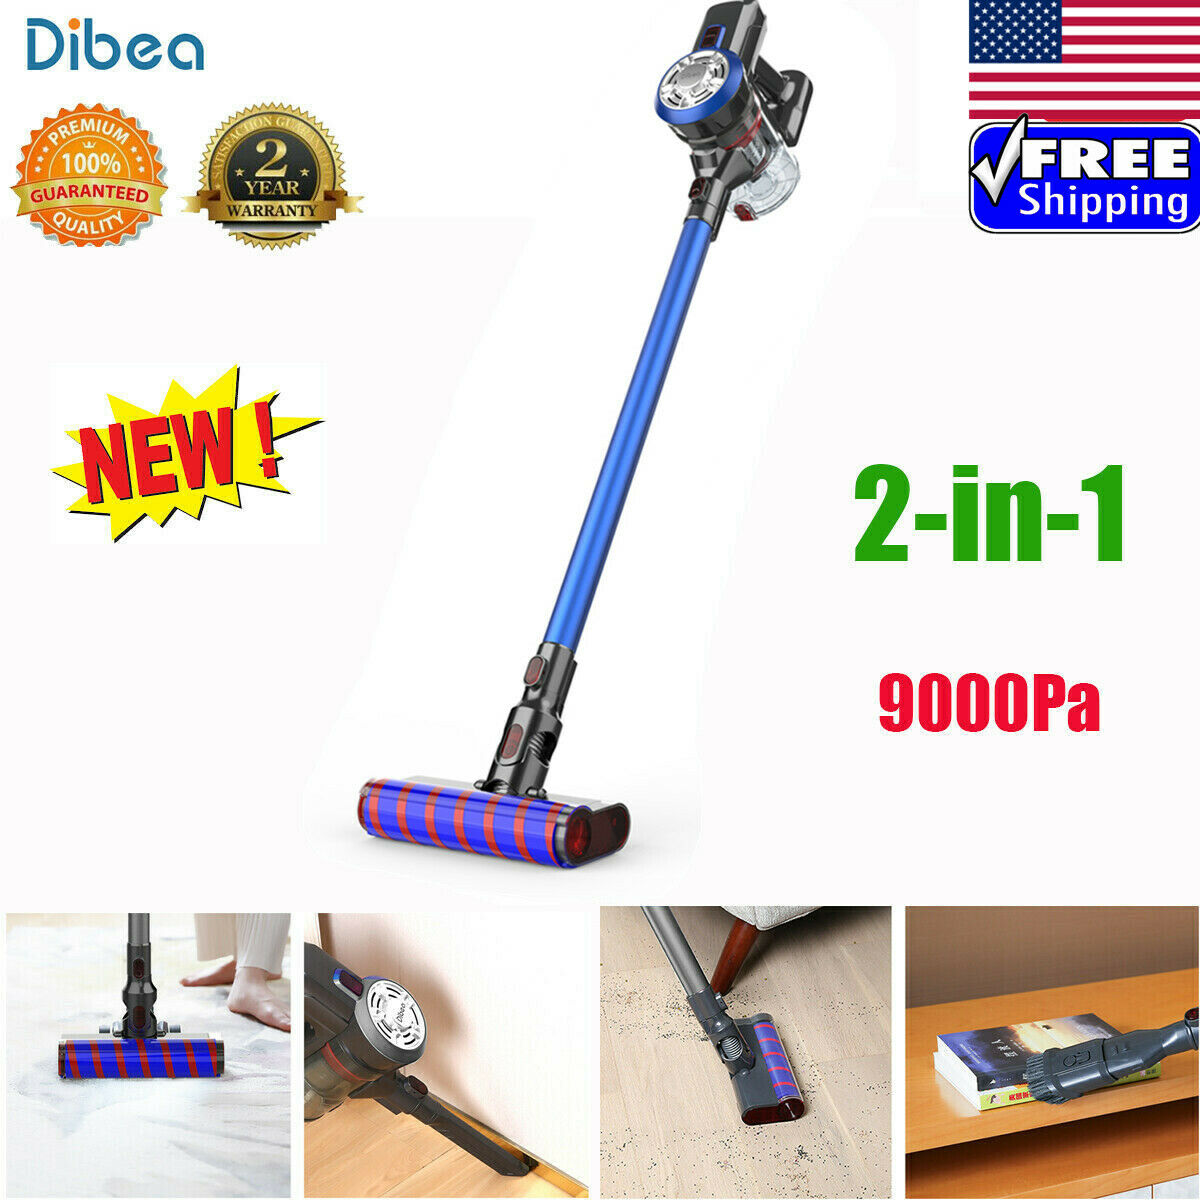 Dibea V008 2-in-1 Cordless Handheld Carpet Floor Vacuum Cleaner 9Kpa Suction US